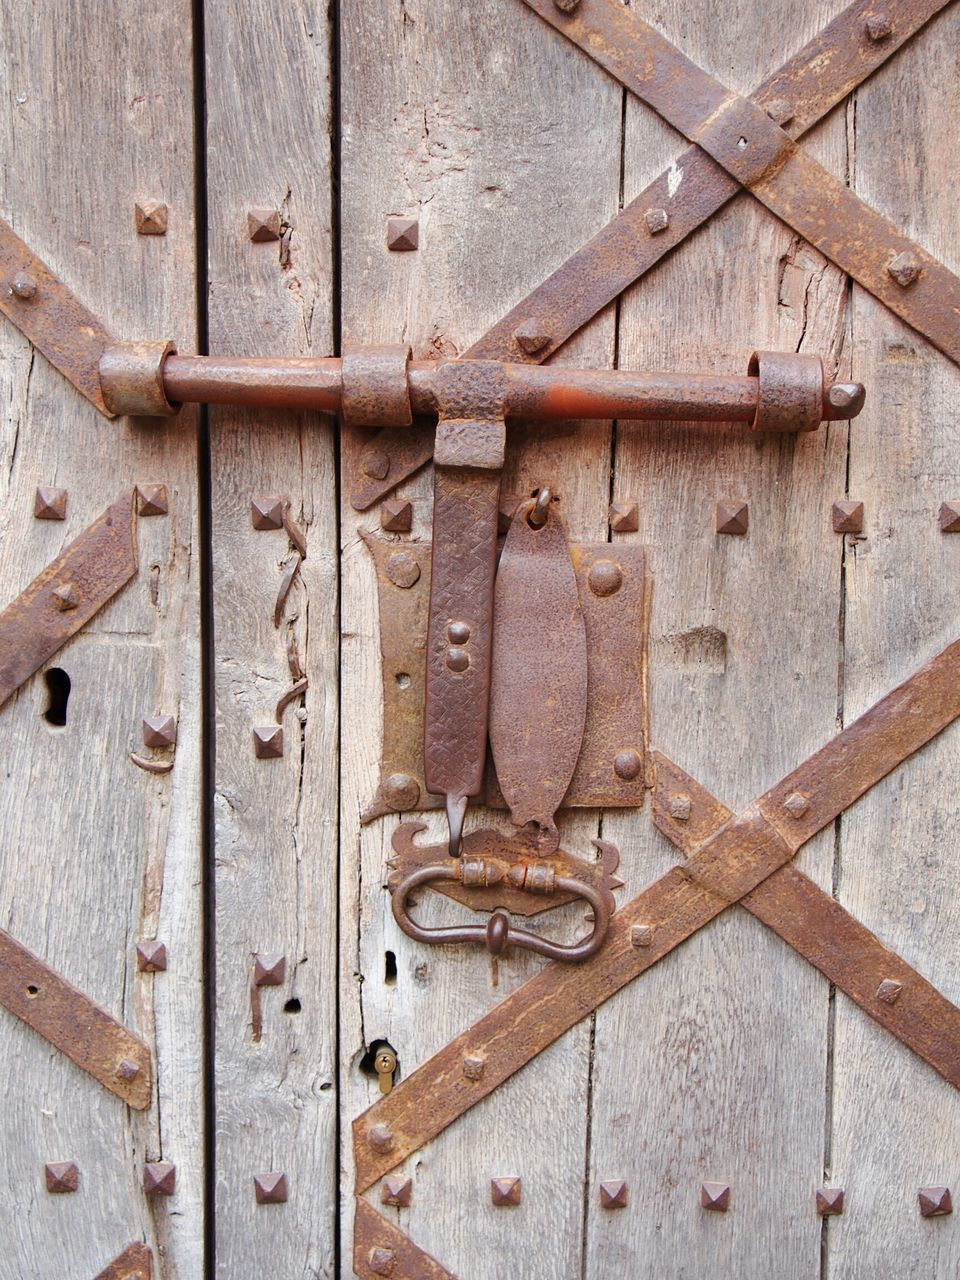 wood - material, door, metal, safety, close-up, no people, rusty, outdoors, full frame, backgrounds, day, latch, hinge